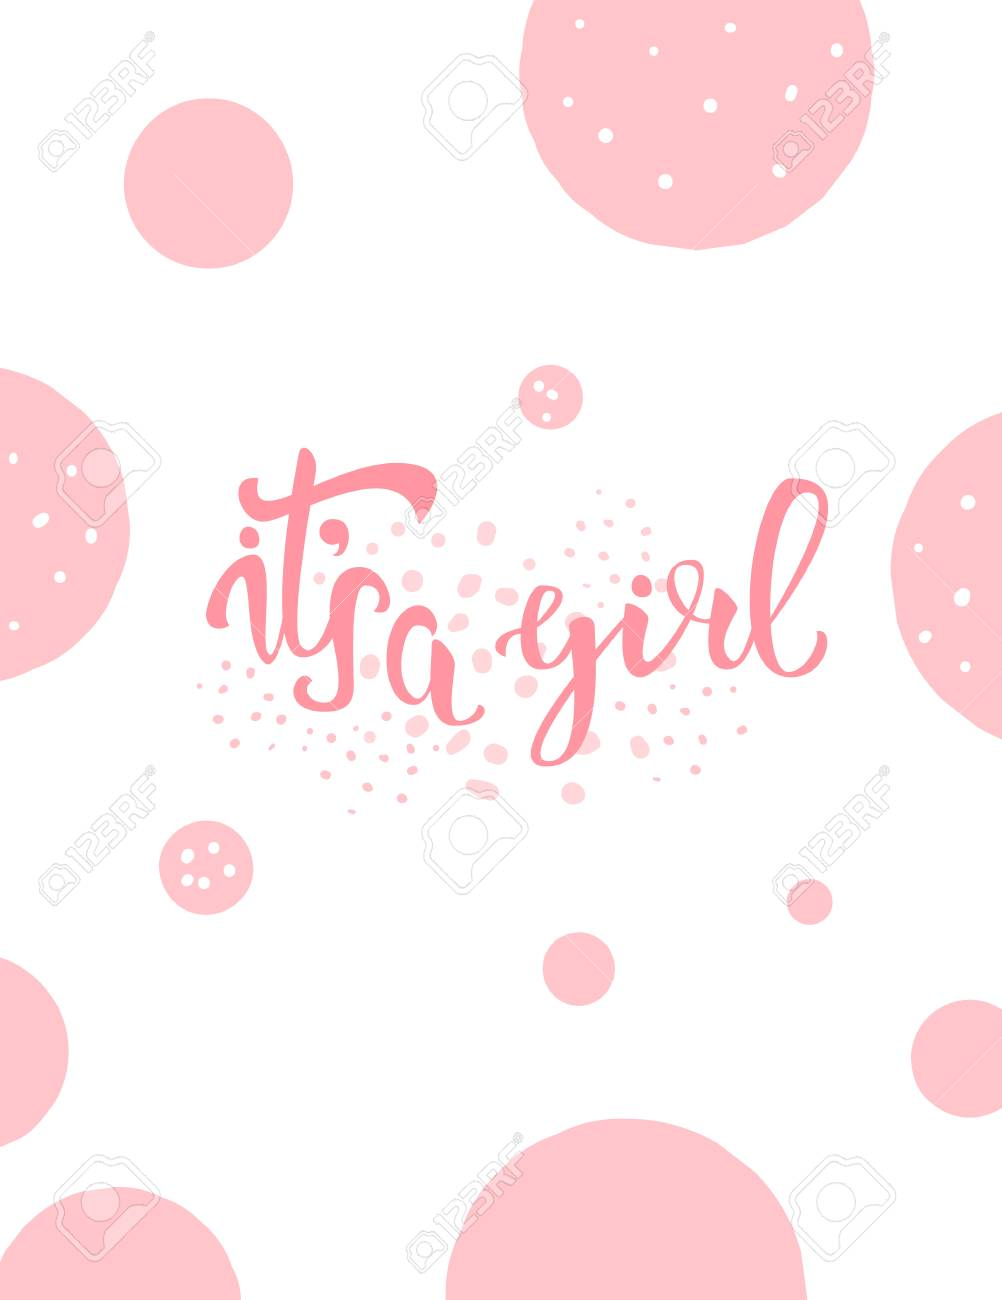 Its A Girl Baby Shower Invitation Template Handwritten Lettering